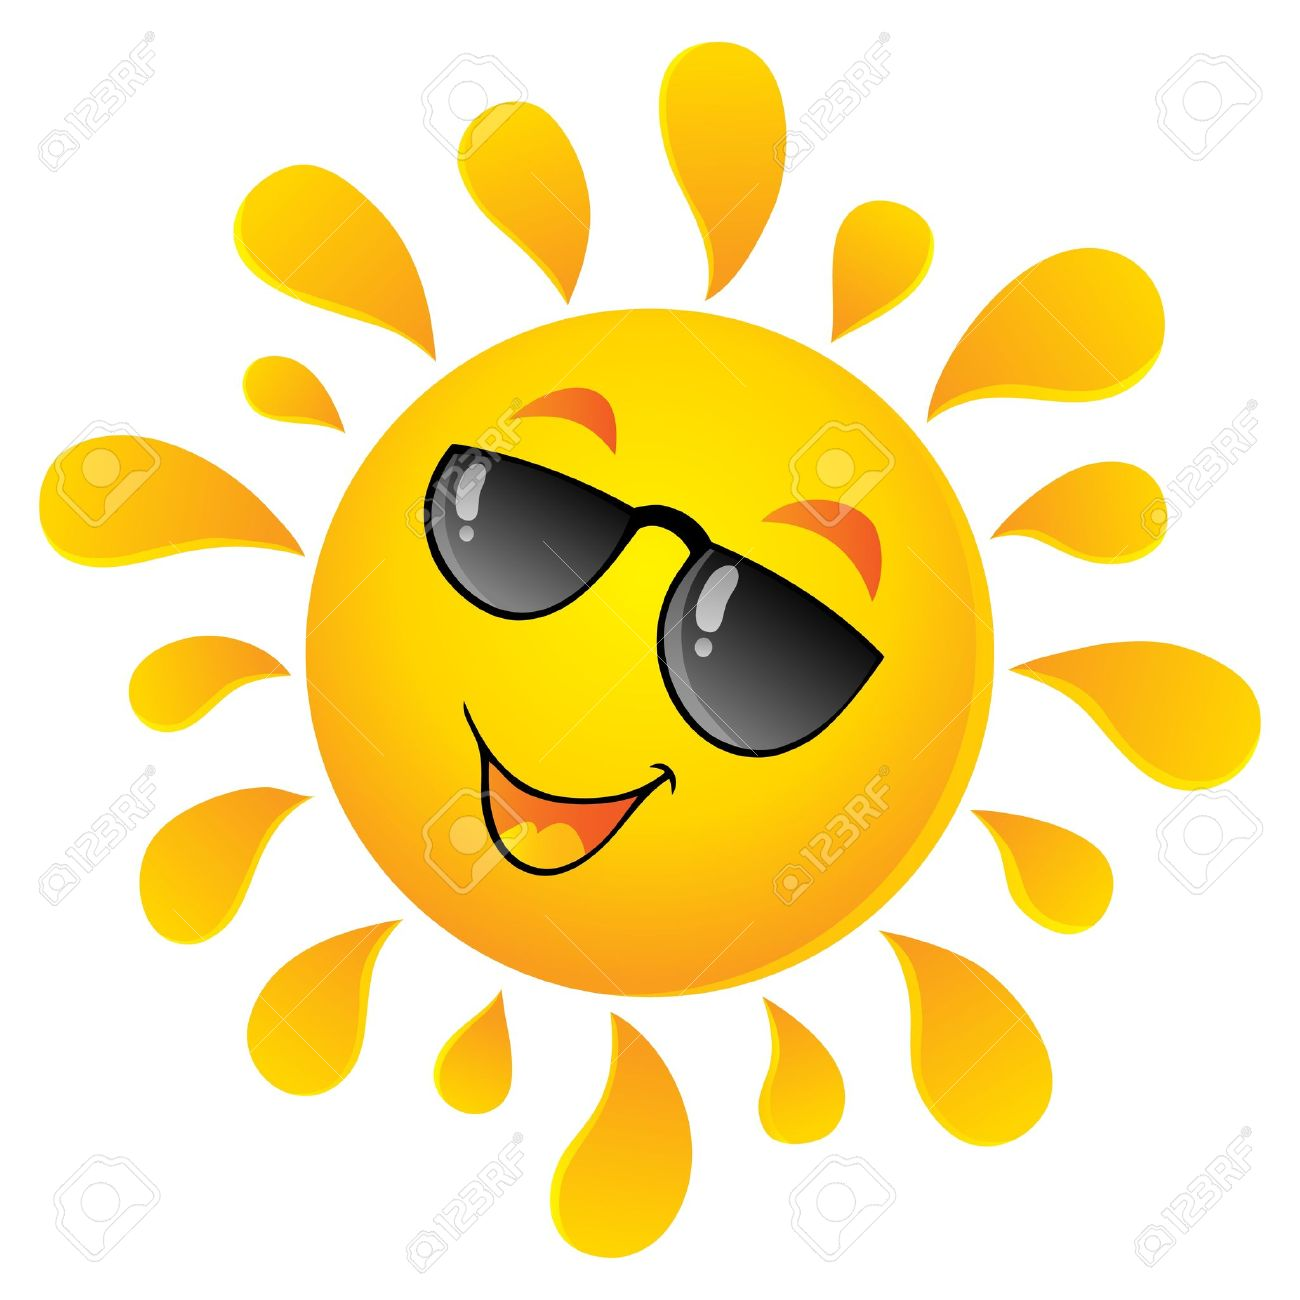 sun theme royalty free cliparts vectors and stock illustration rh 123rf com sun with sunglasses clipart free cliparts sunglasses